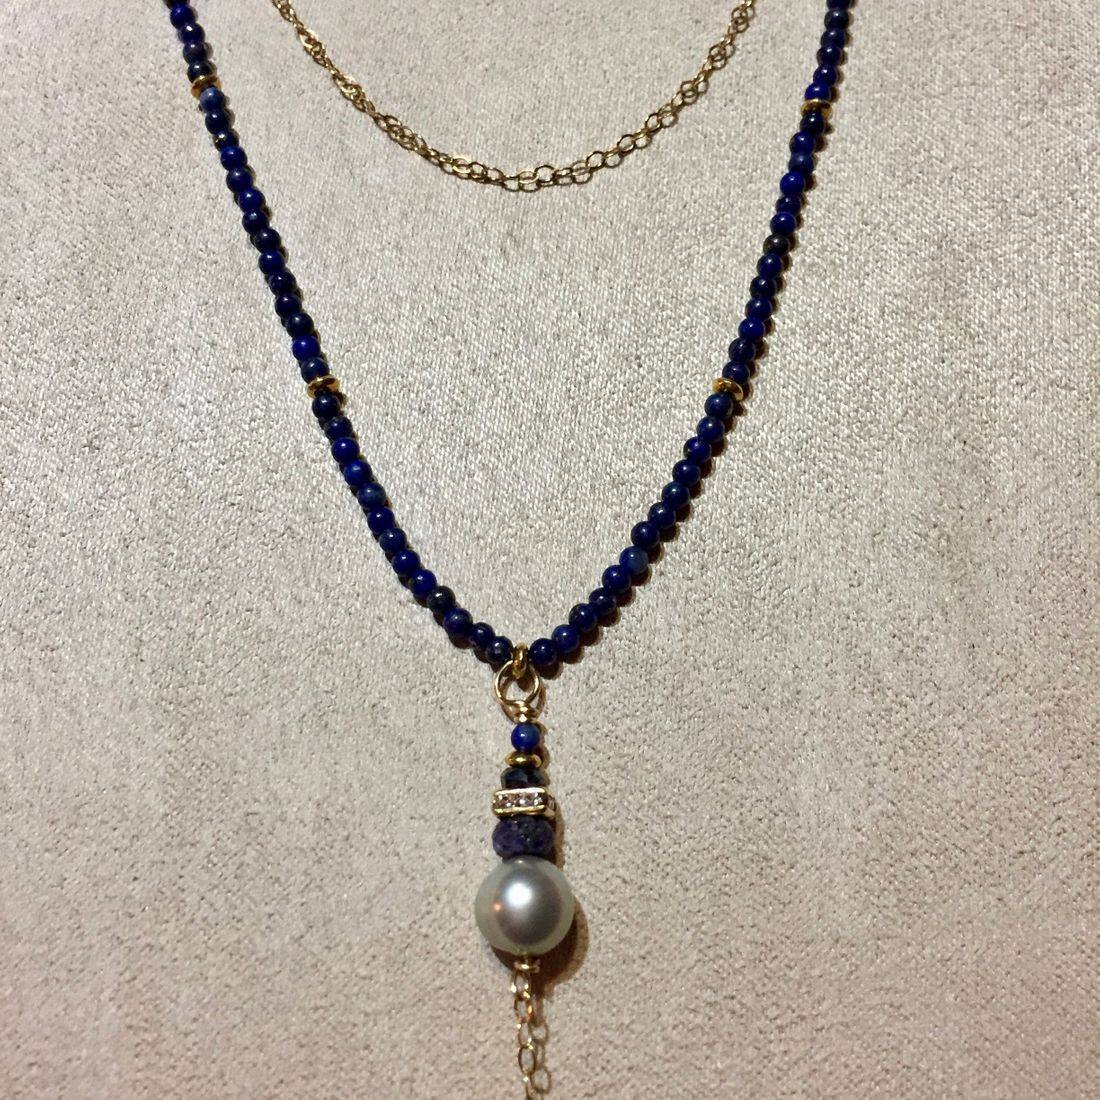 "5"" drop, 23""  Edwardian style necklace with lapis, freshwater pearls on 14k gold filled chain"